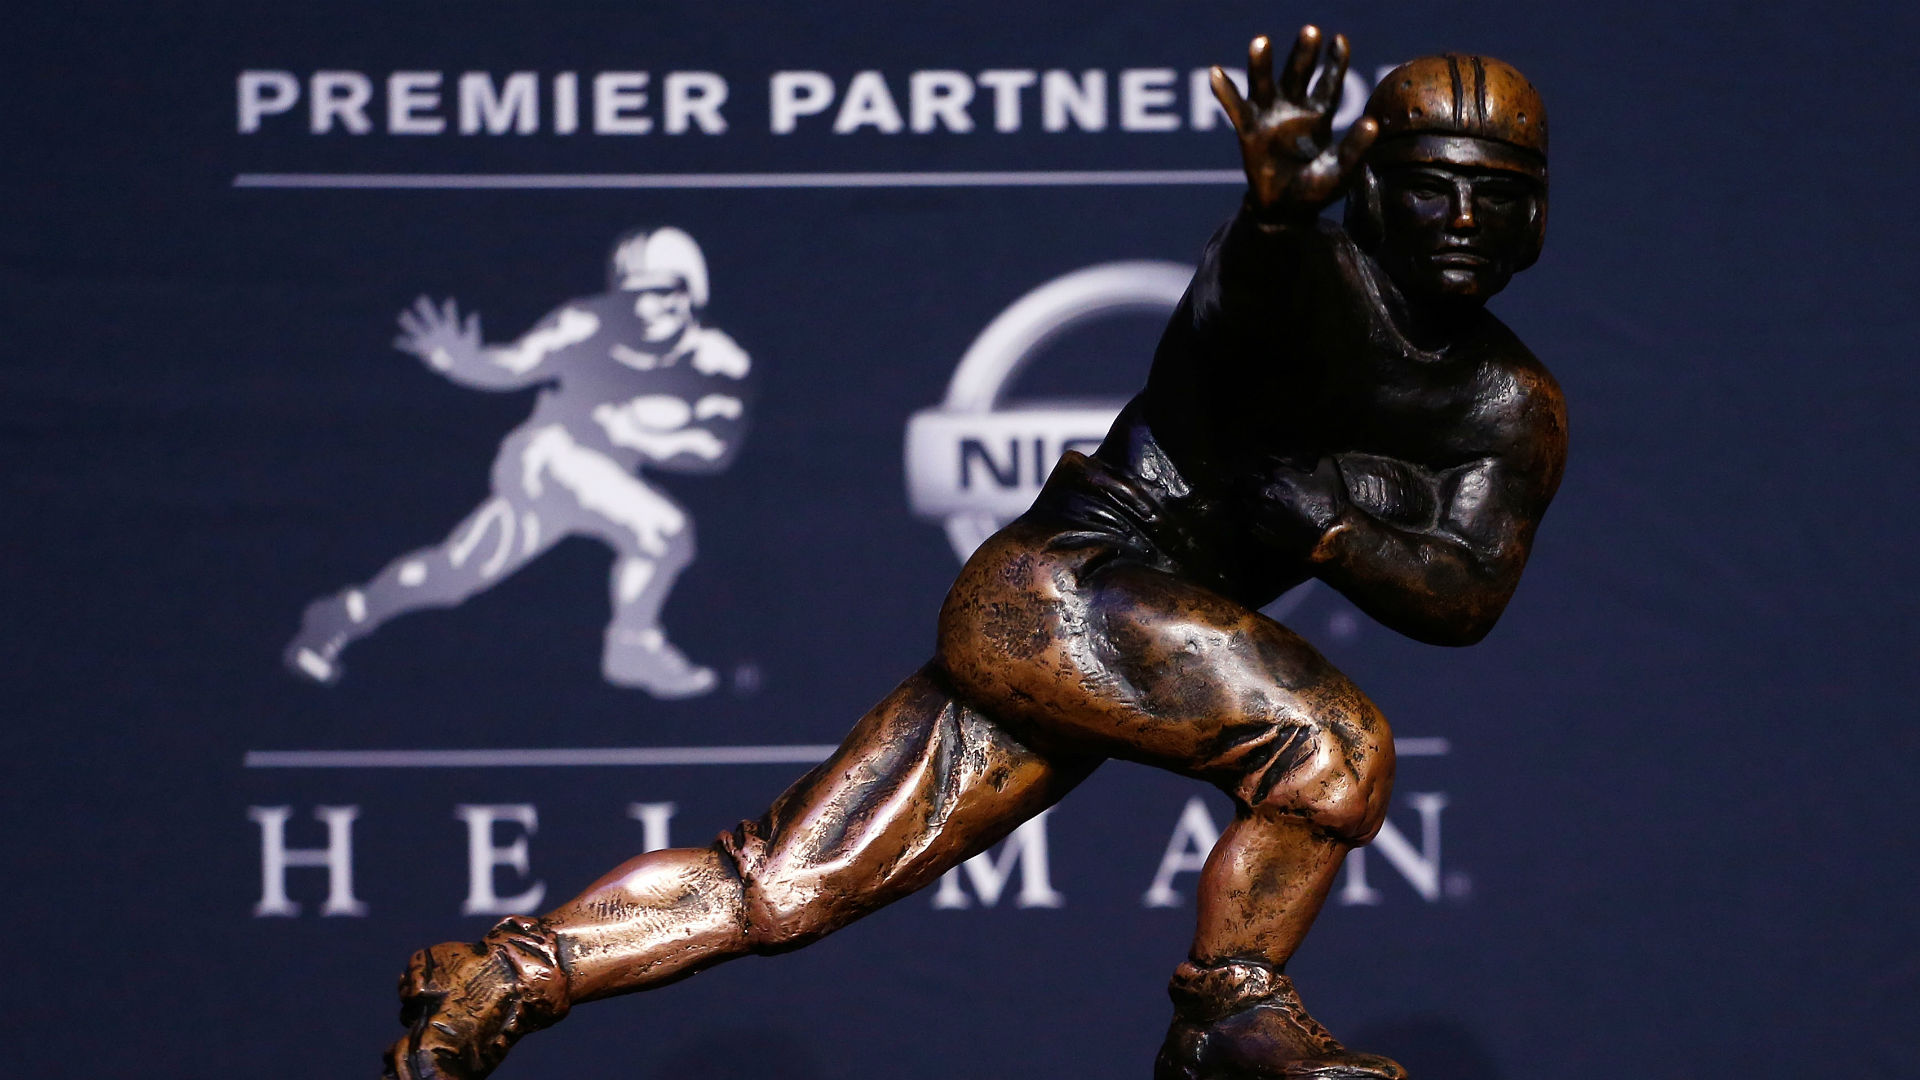 With season in flux, Heisman Trophy board hasn't decided how to handle 2020 award